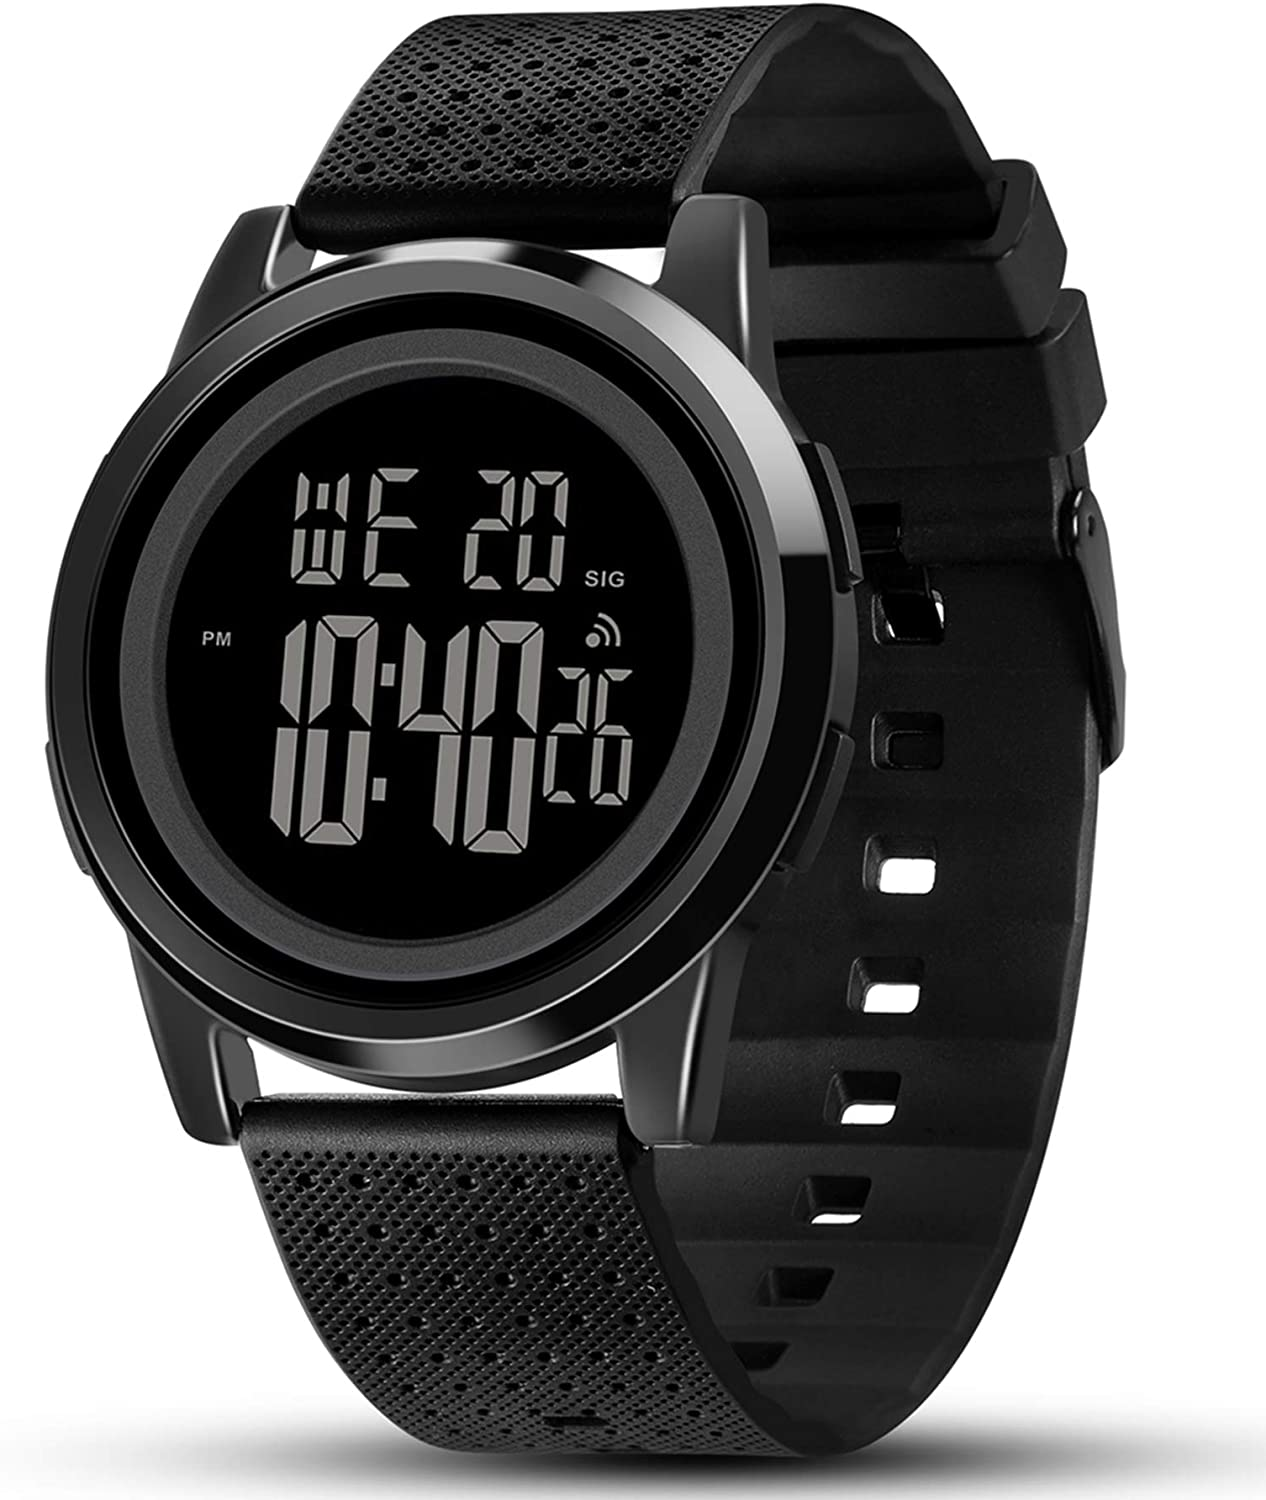 Amazon.com: YUINK Men's Ultra-Thin Stainless Steel Digital Sports Watch, Multifunctional Chronograph Minimalist Waterproof - Fashion Wrist Watch for Men (Black): Watches